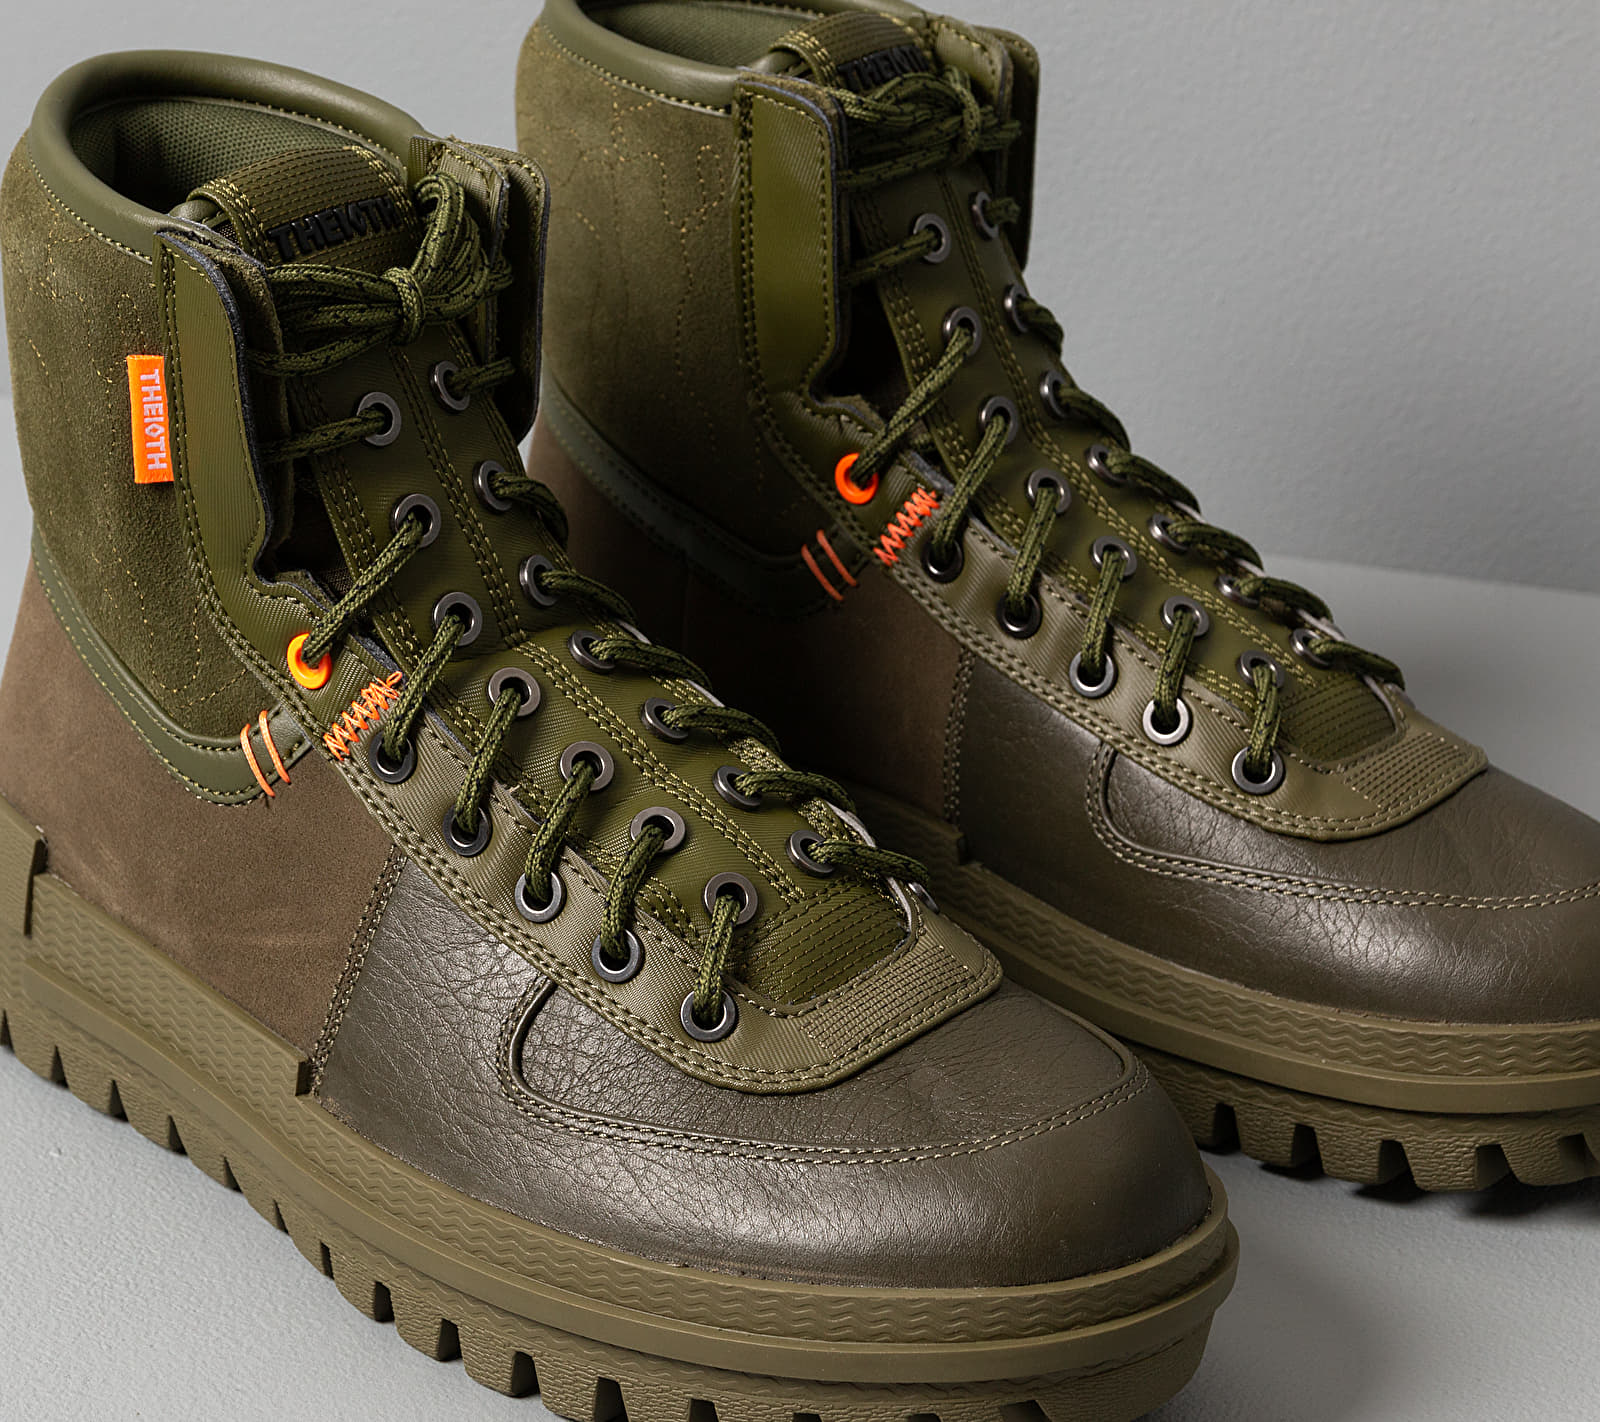 Nike Xarr Medium Olive/ Black,Legion Green,Cone , footshop